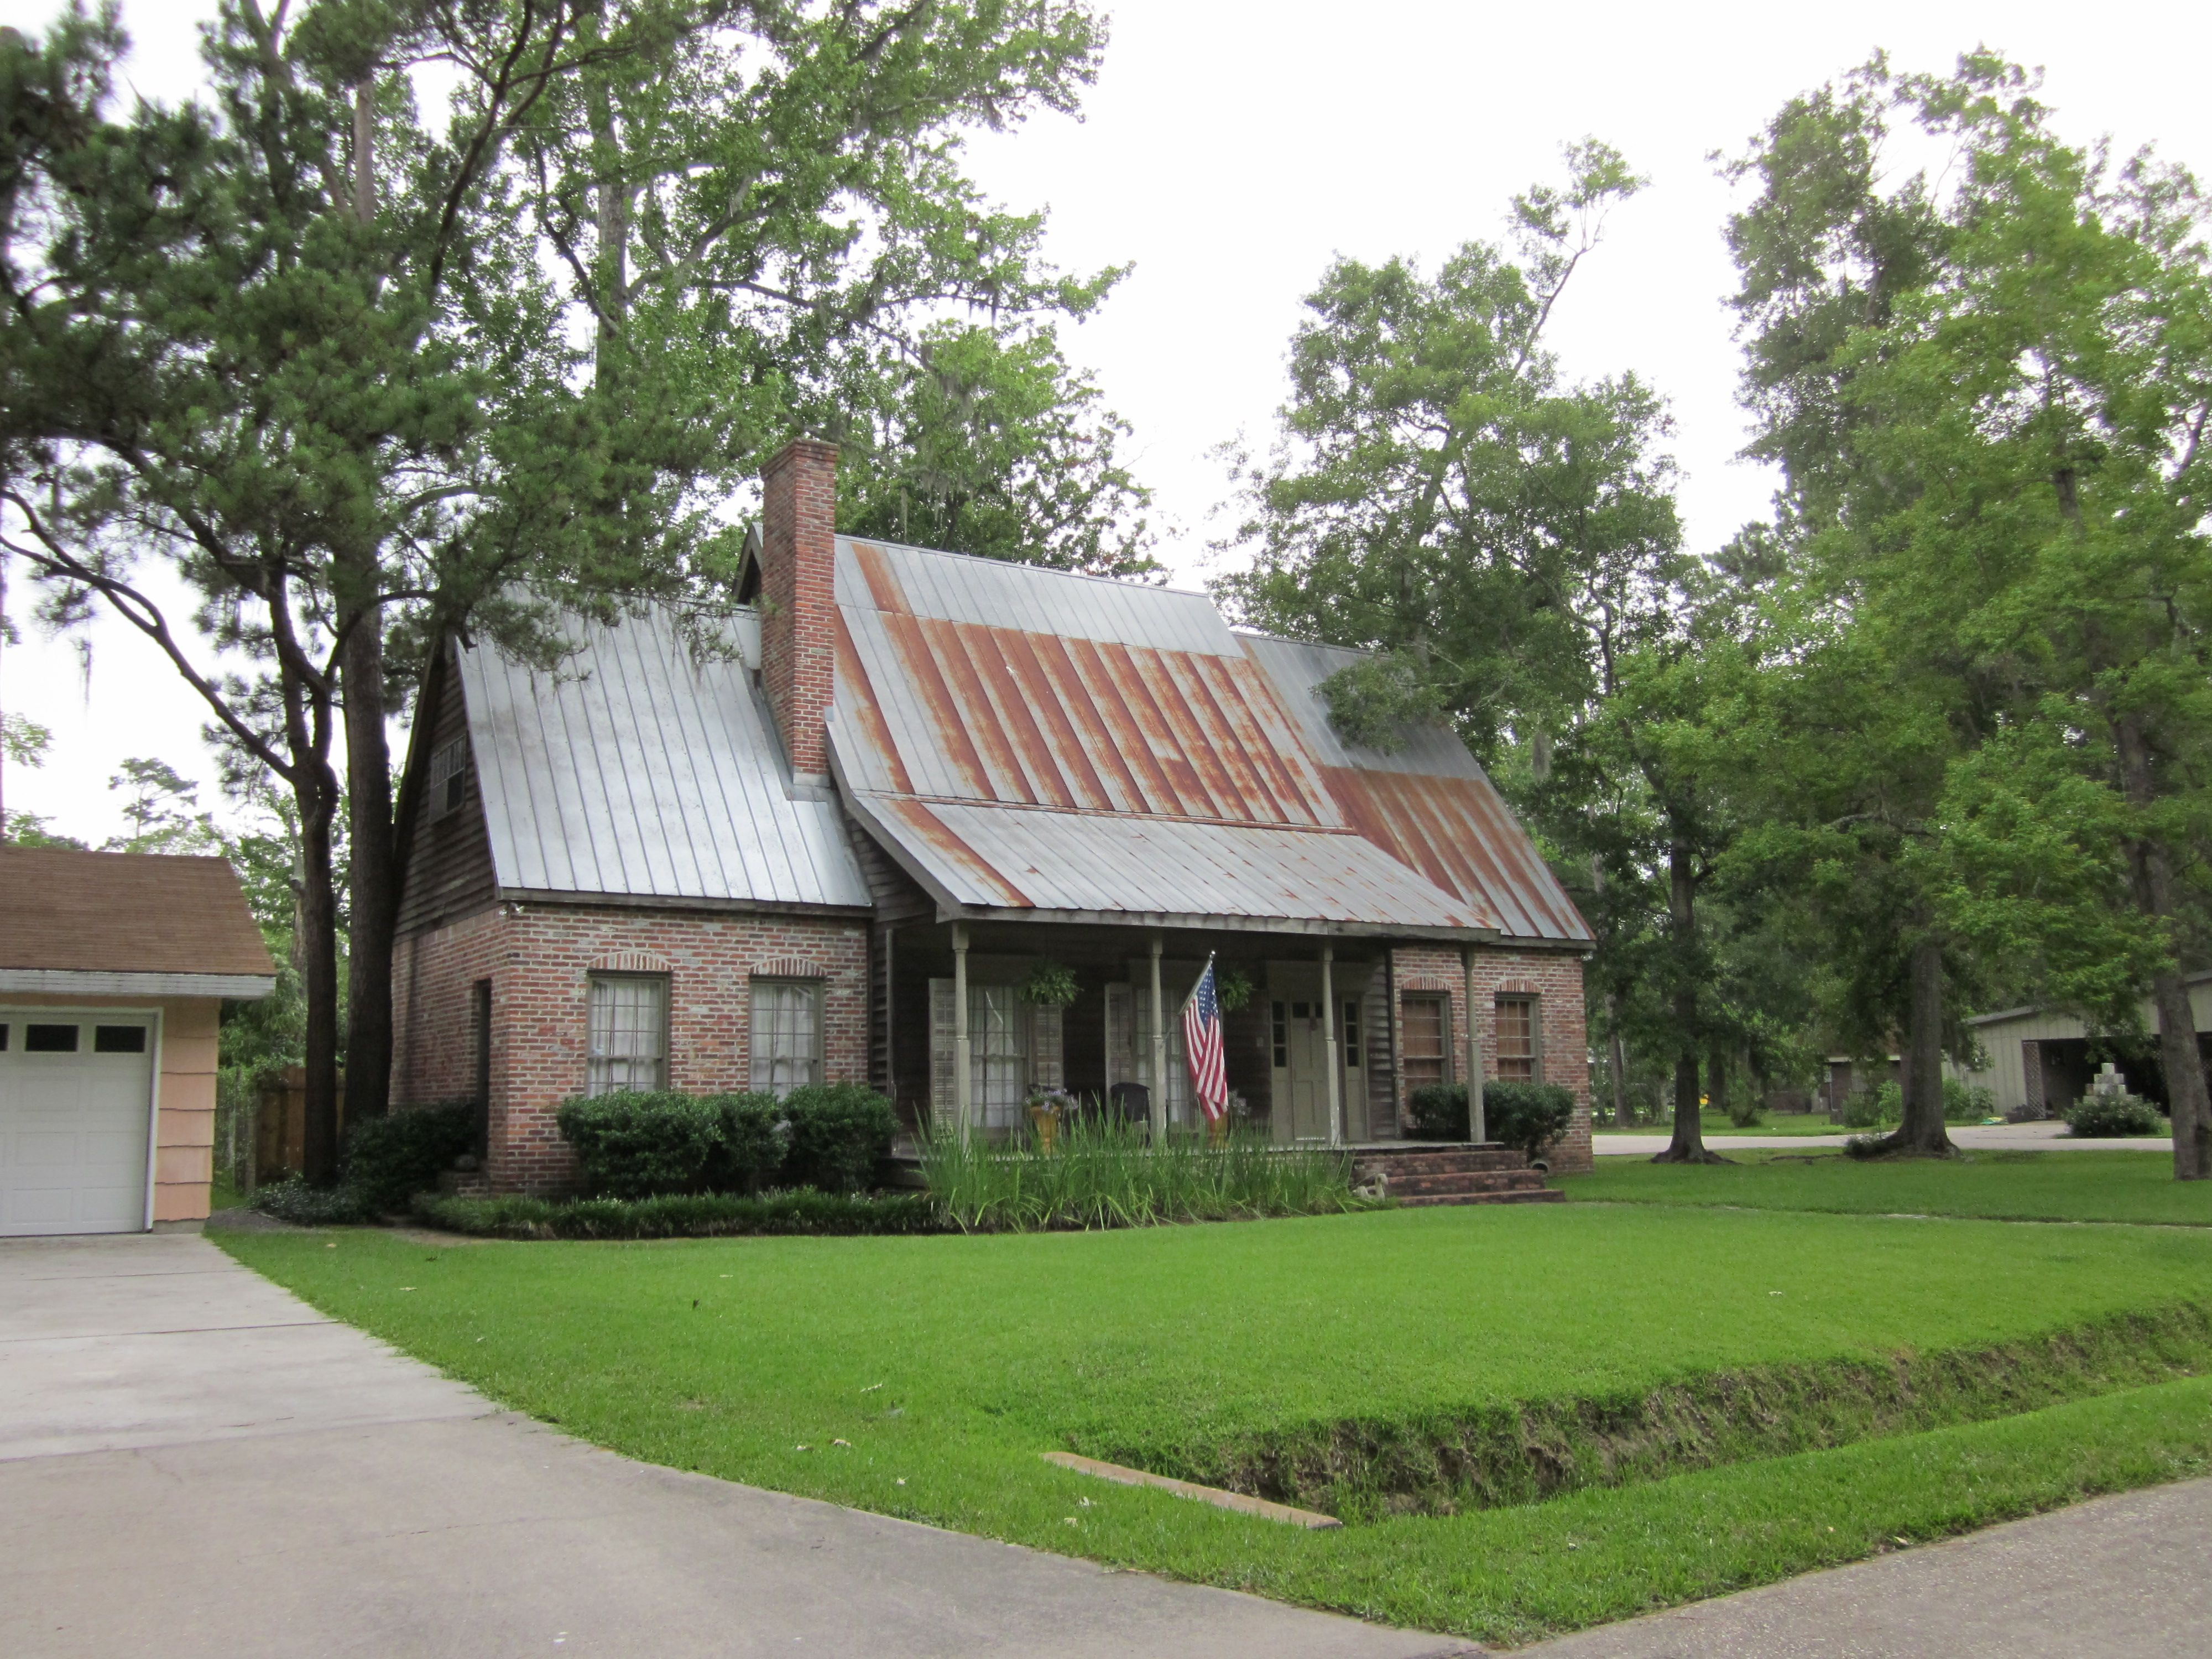 Home timelesswoodcreations com - Arts And Crafts Style Homes With Metal Roof Google Search Timeless Wood Creations Low